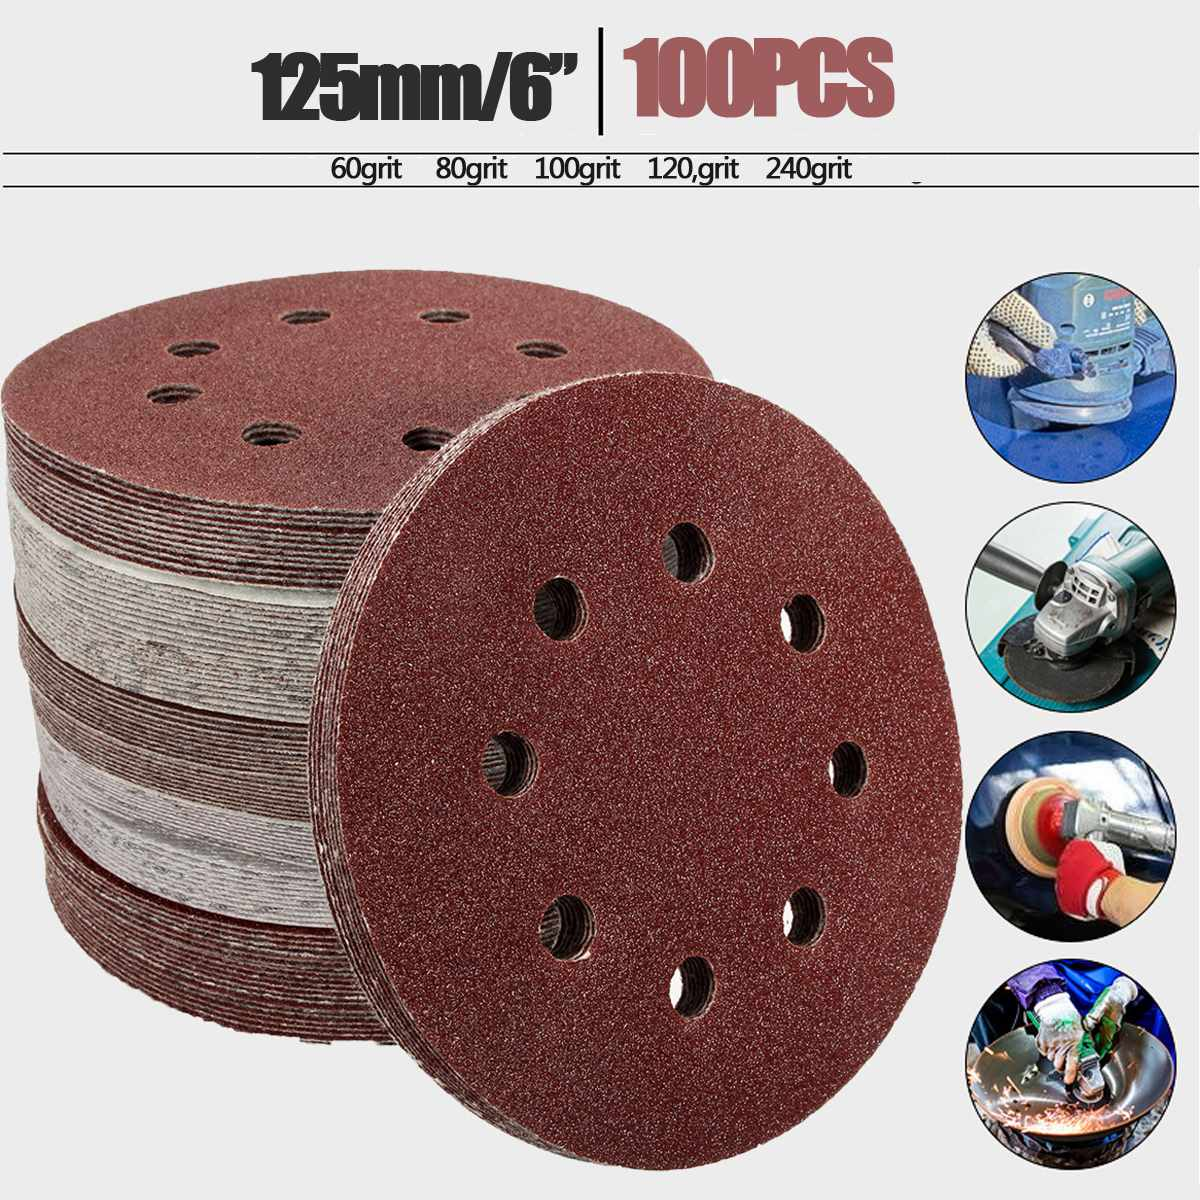 цена на 100pcs 125mm/5'' Orbit Sanding Polishing Sheet Sandpaper Round Shape Sander Discs Mixed 60/80/100/120/240 Grit Polish Pad